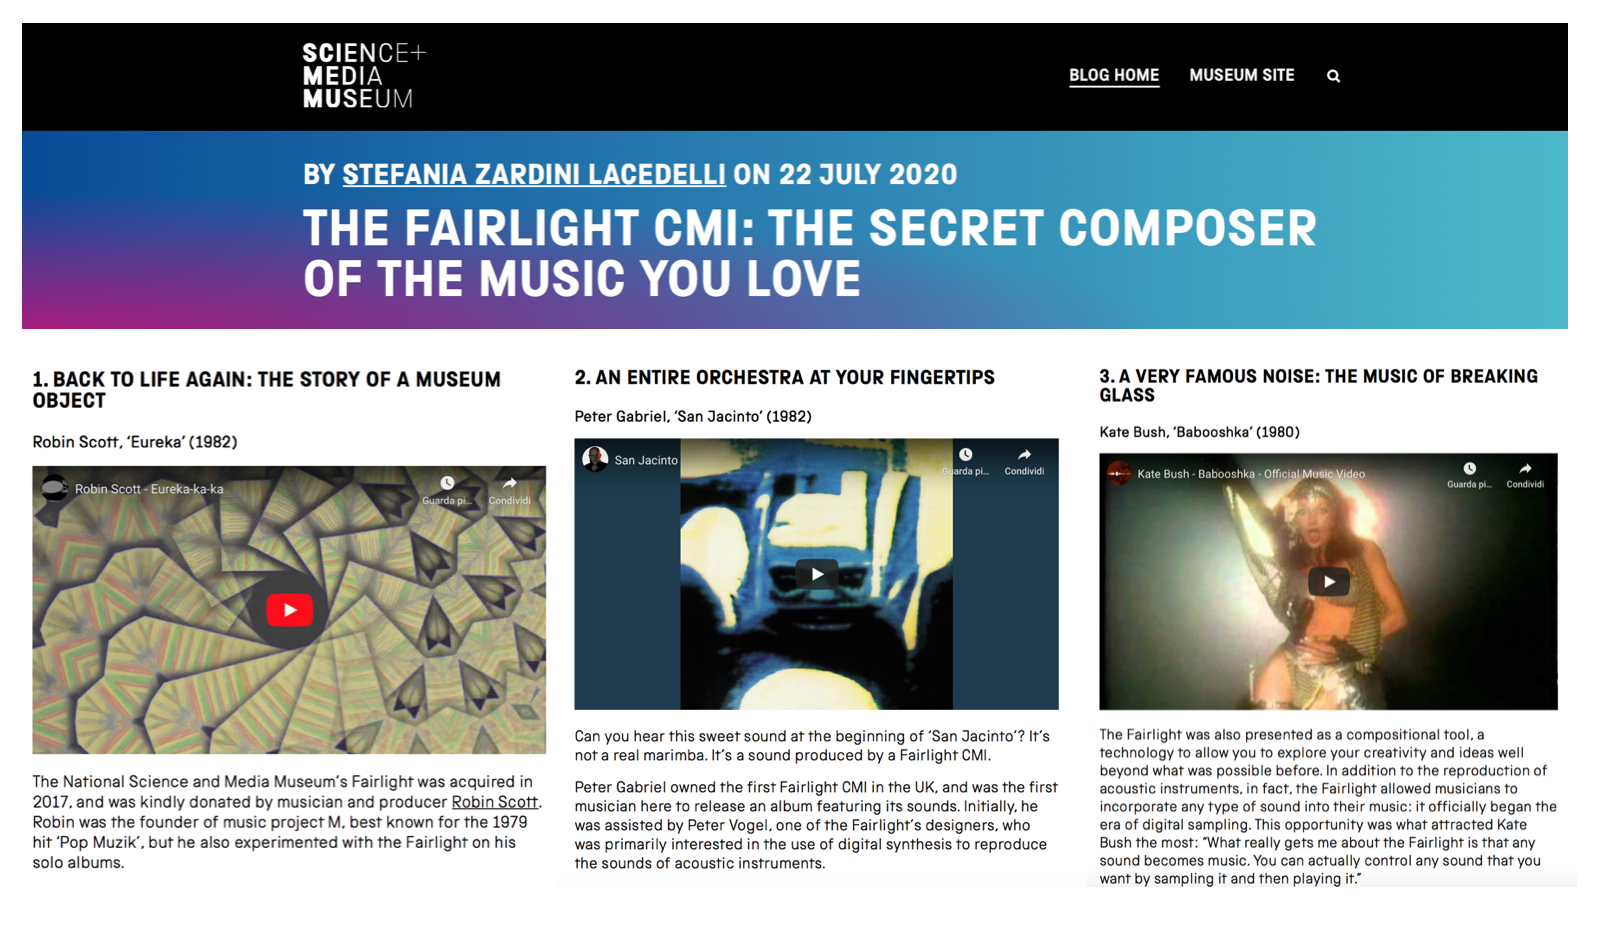 The playlist dedicated to Fairlight synthesiser on the Science and Media Museum blog